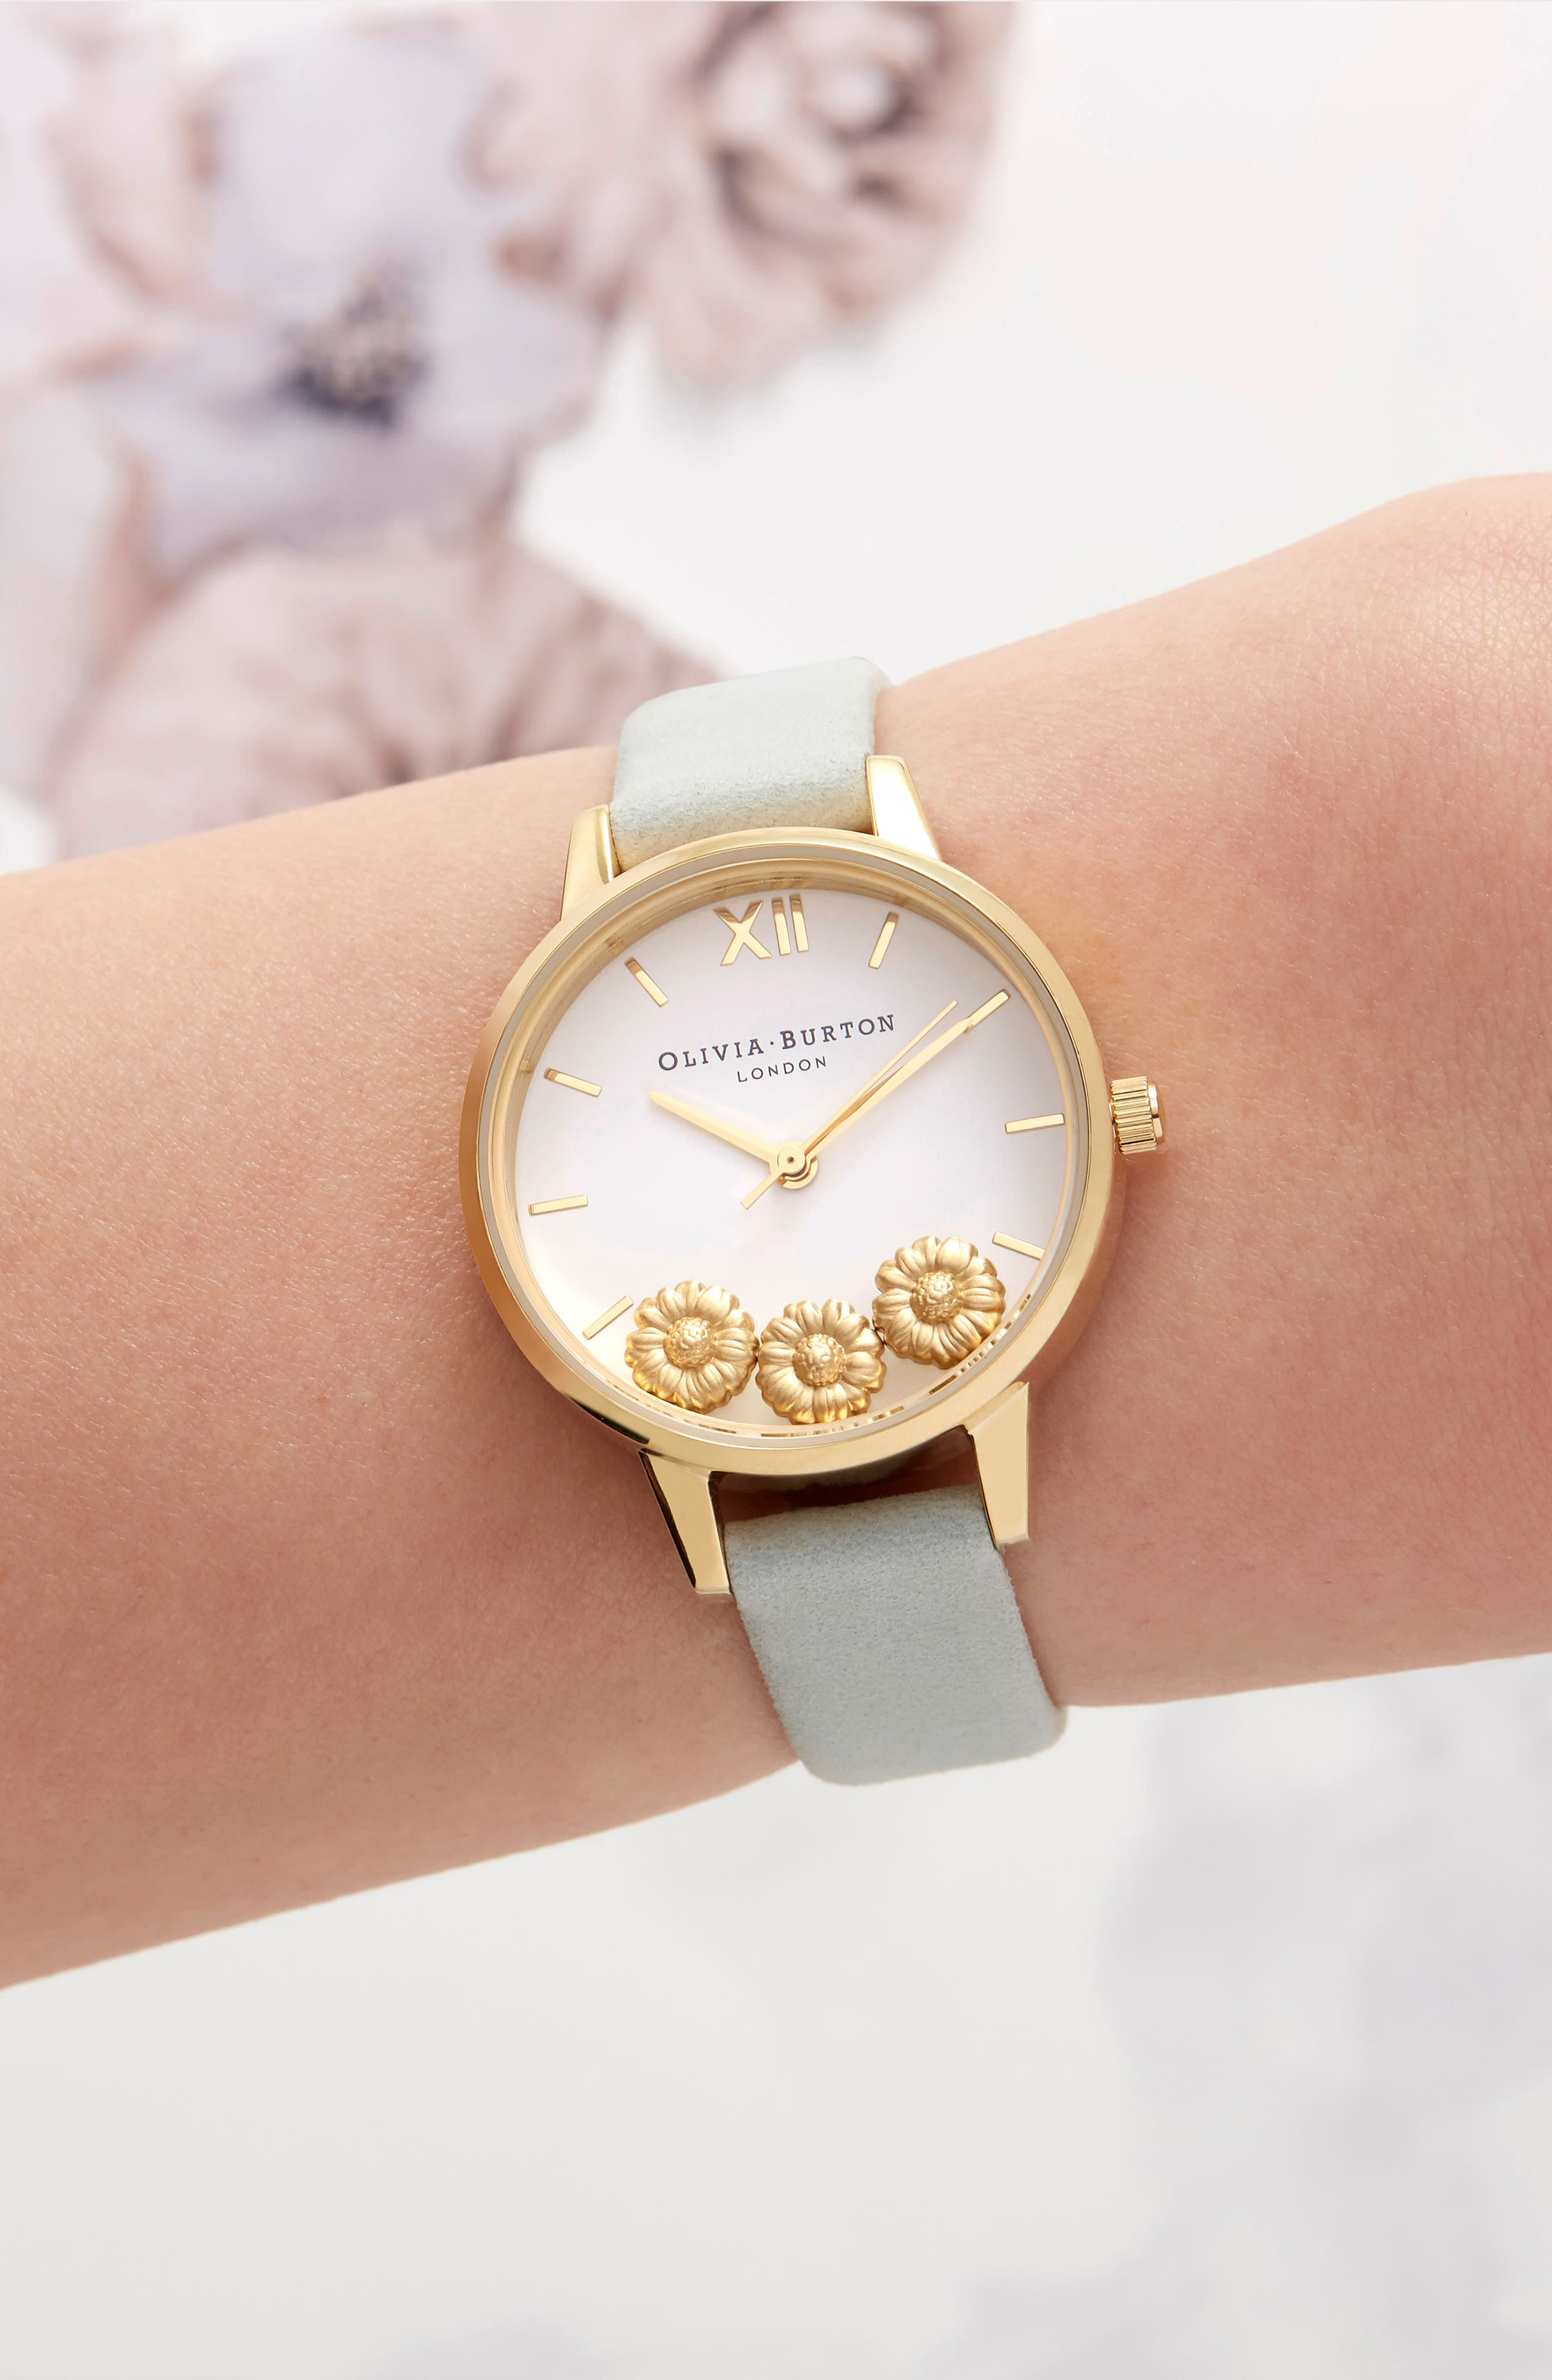 Dancing Daisy Leather Strap Watch, 30mm,                             Alternate thumbnail 7, color,                             SAGE/ WHITE/ GOLD